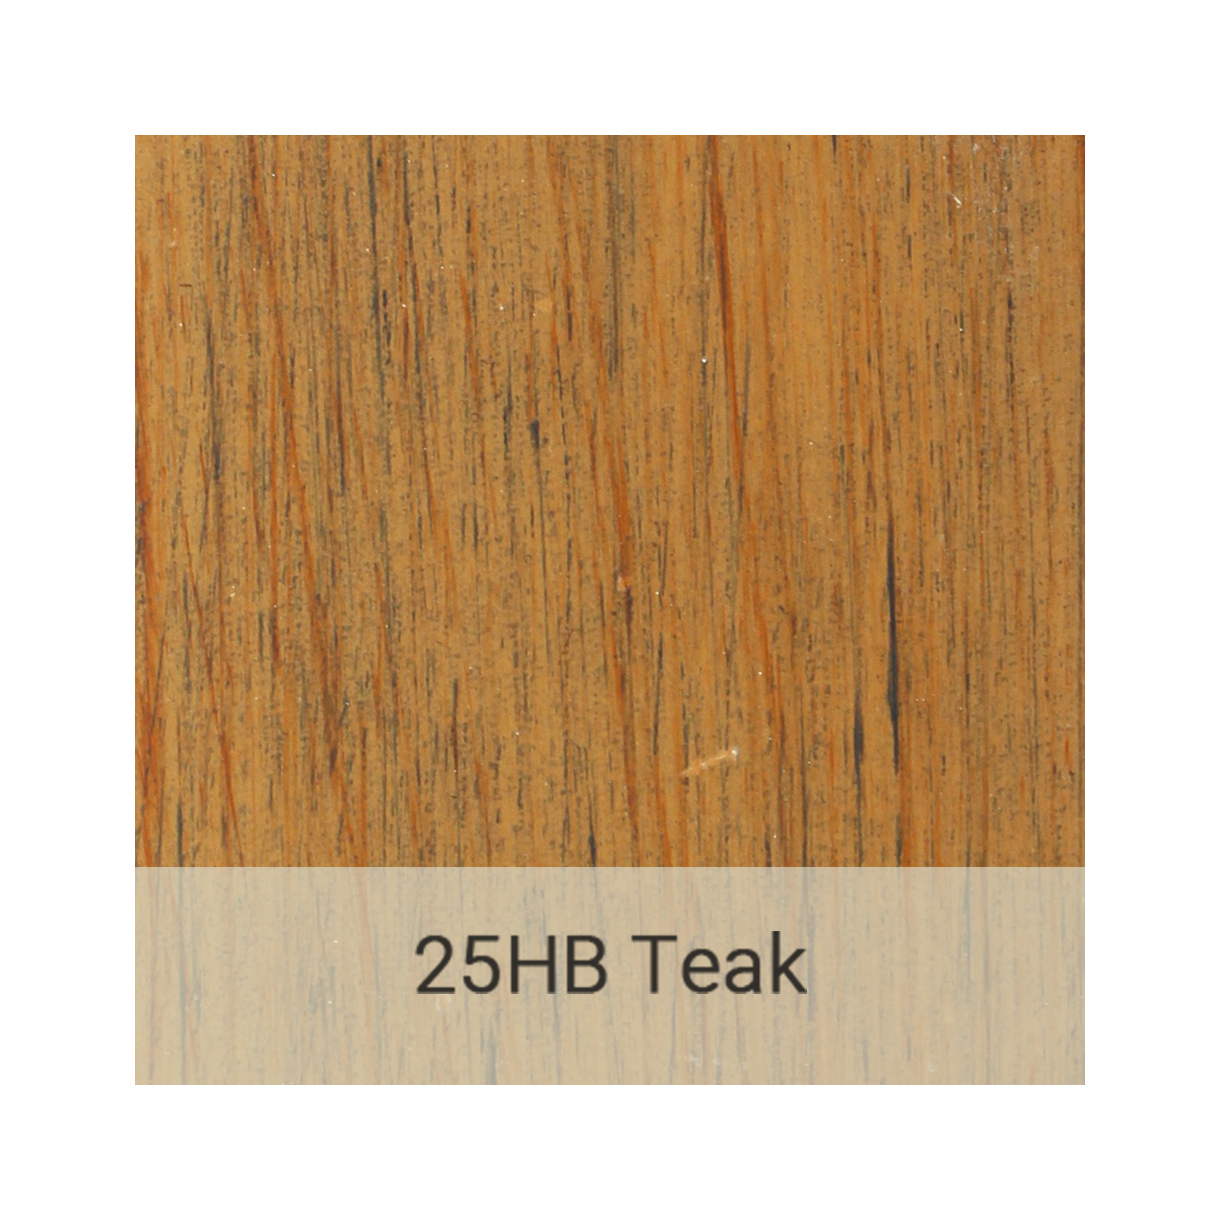 Kingston Casual handbrushed-25hb-teak